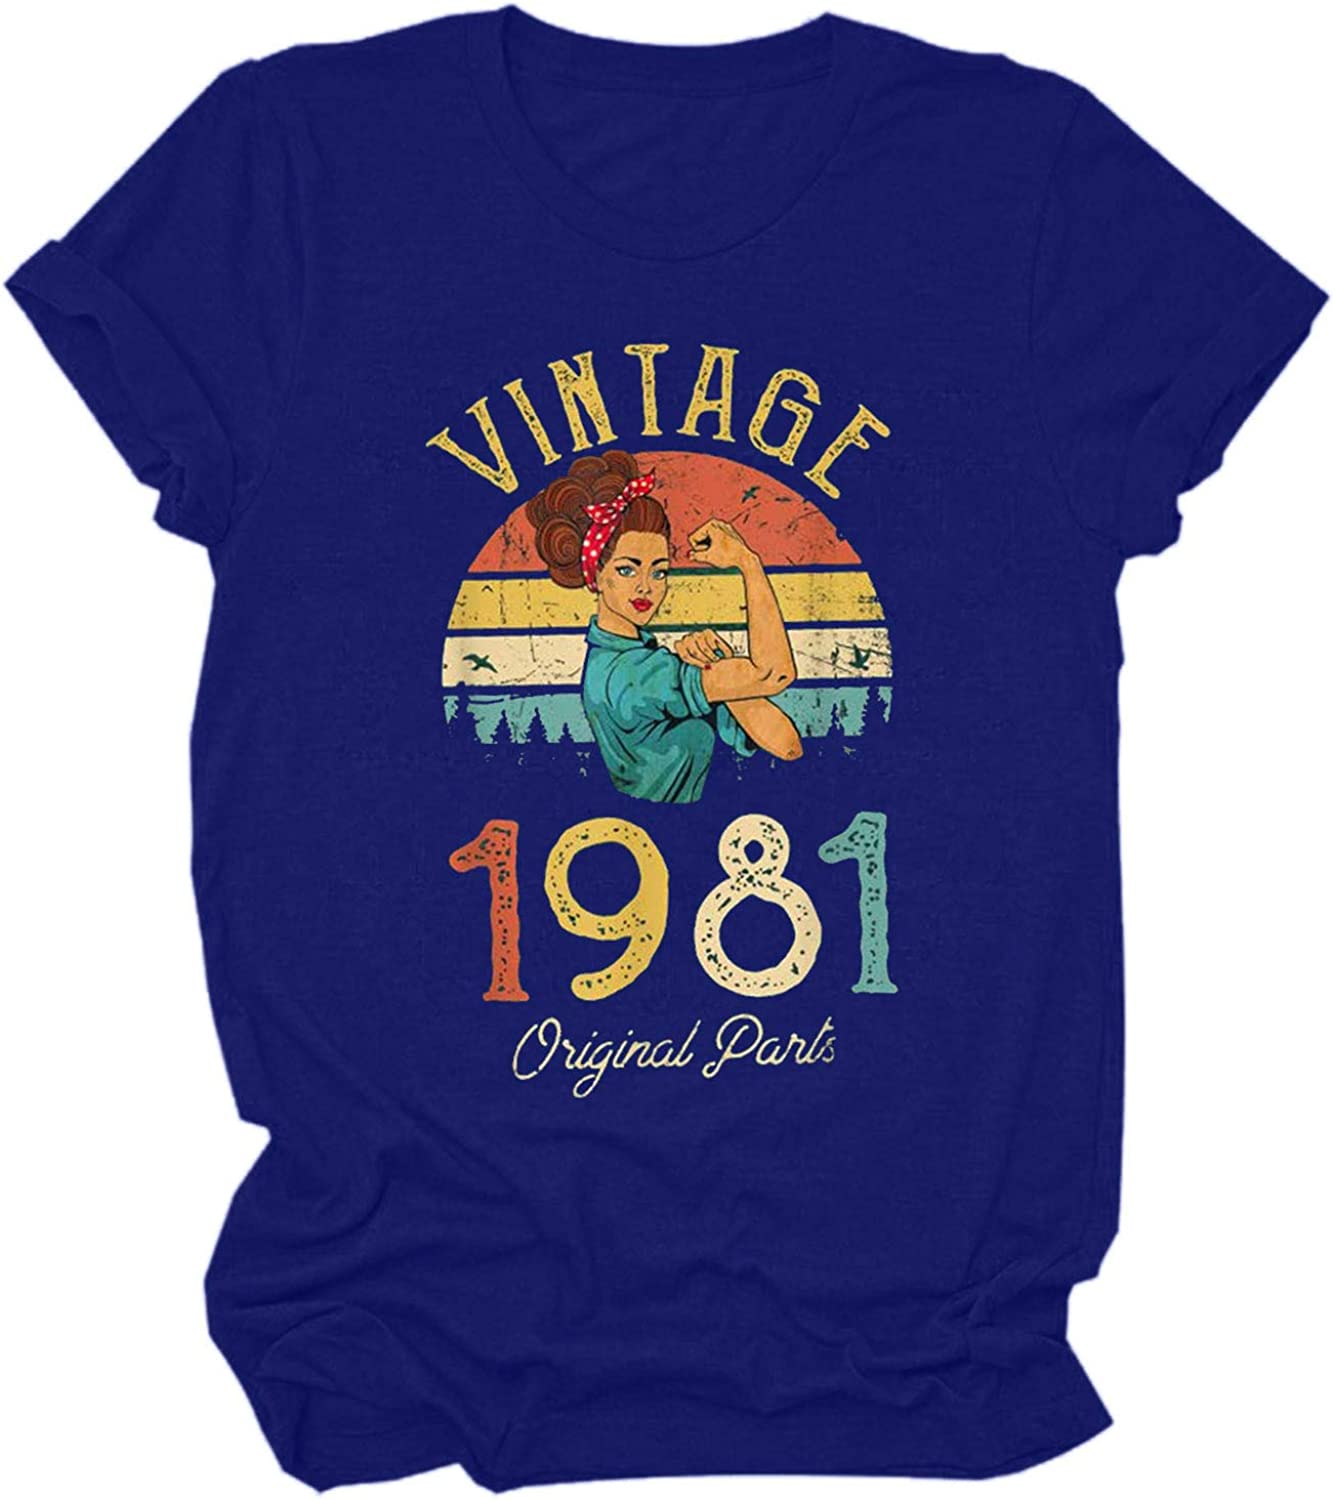 40th Birthday T Shirts for Women Retro Birthday Graphic Tees Shirt Vintage 1981 Original Parts Funny Casual Tops